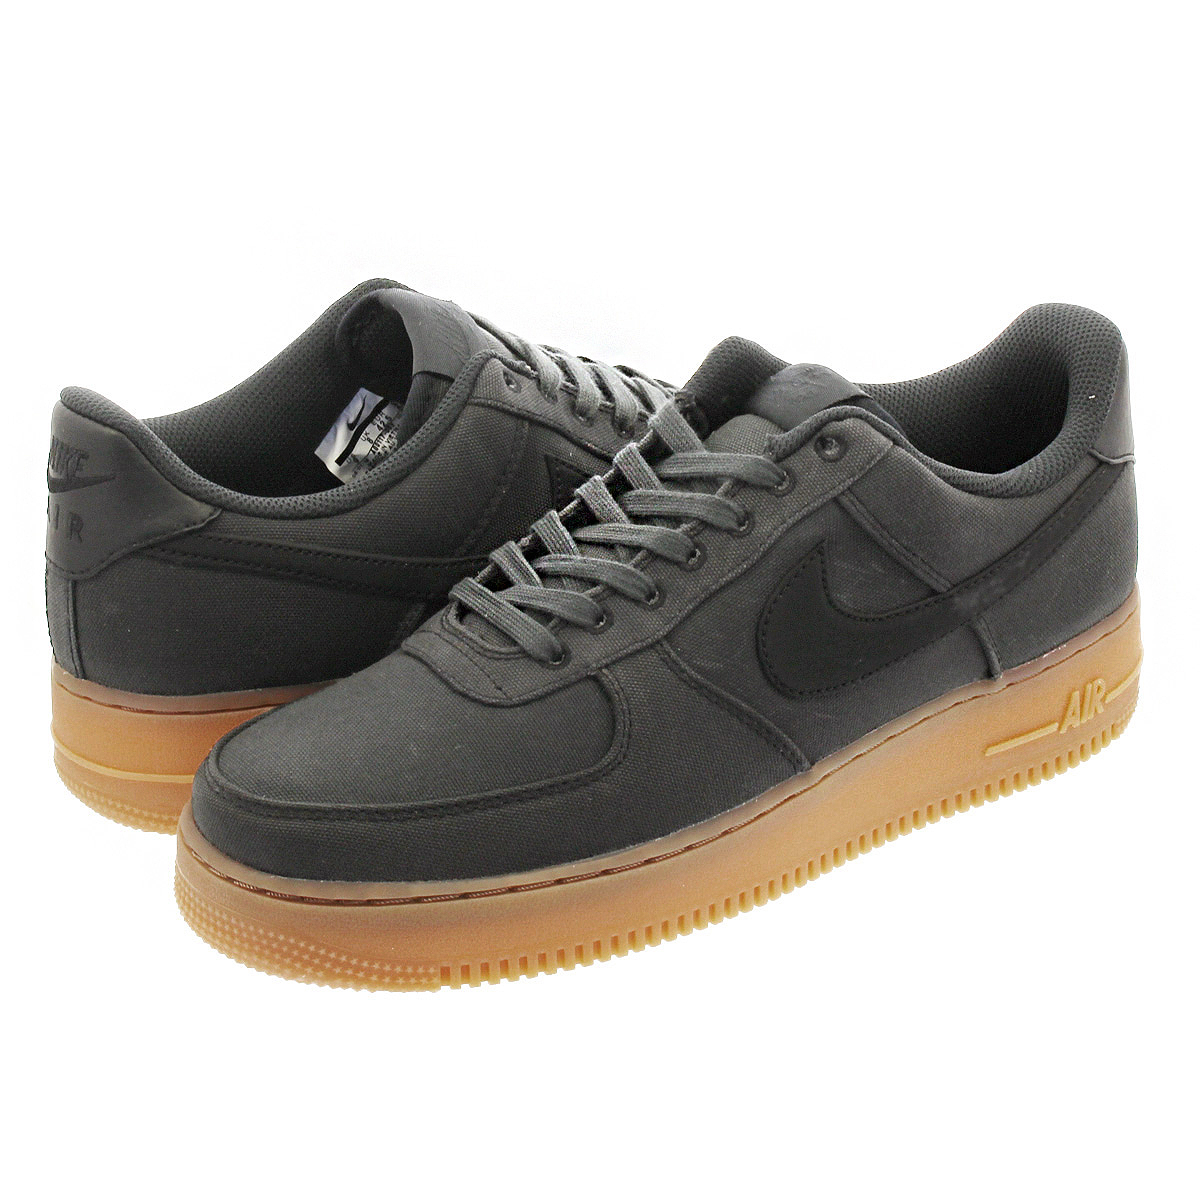 low priced c5034 52250 NIKE AIR FORCE 1  07 LV8 STYLE Nike air force 1  07 LV8-style BLACK GUM MED  BROWN aq0117-002